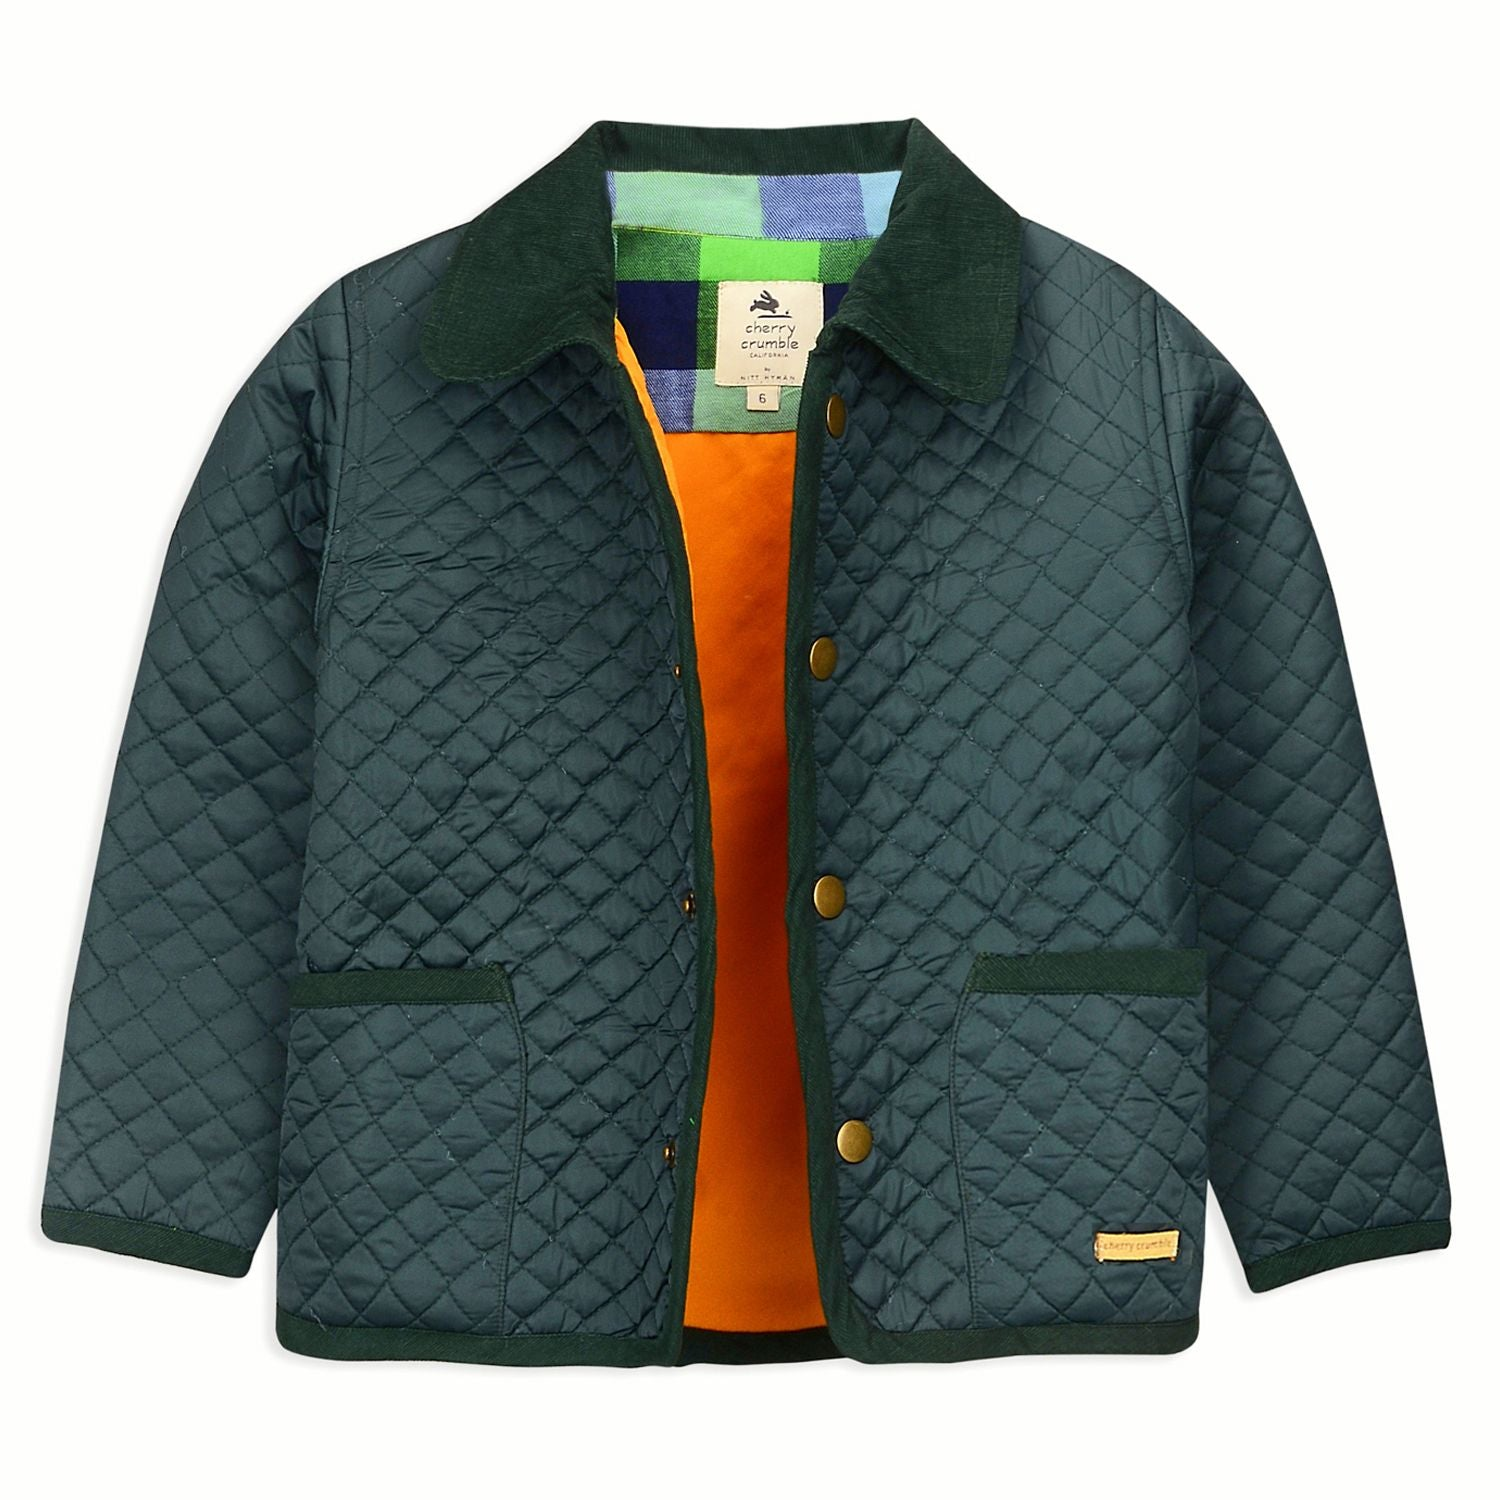 Collar Jacket for kids